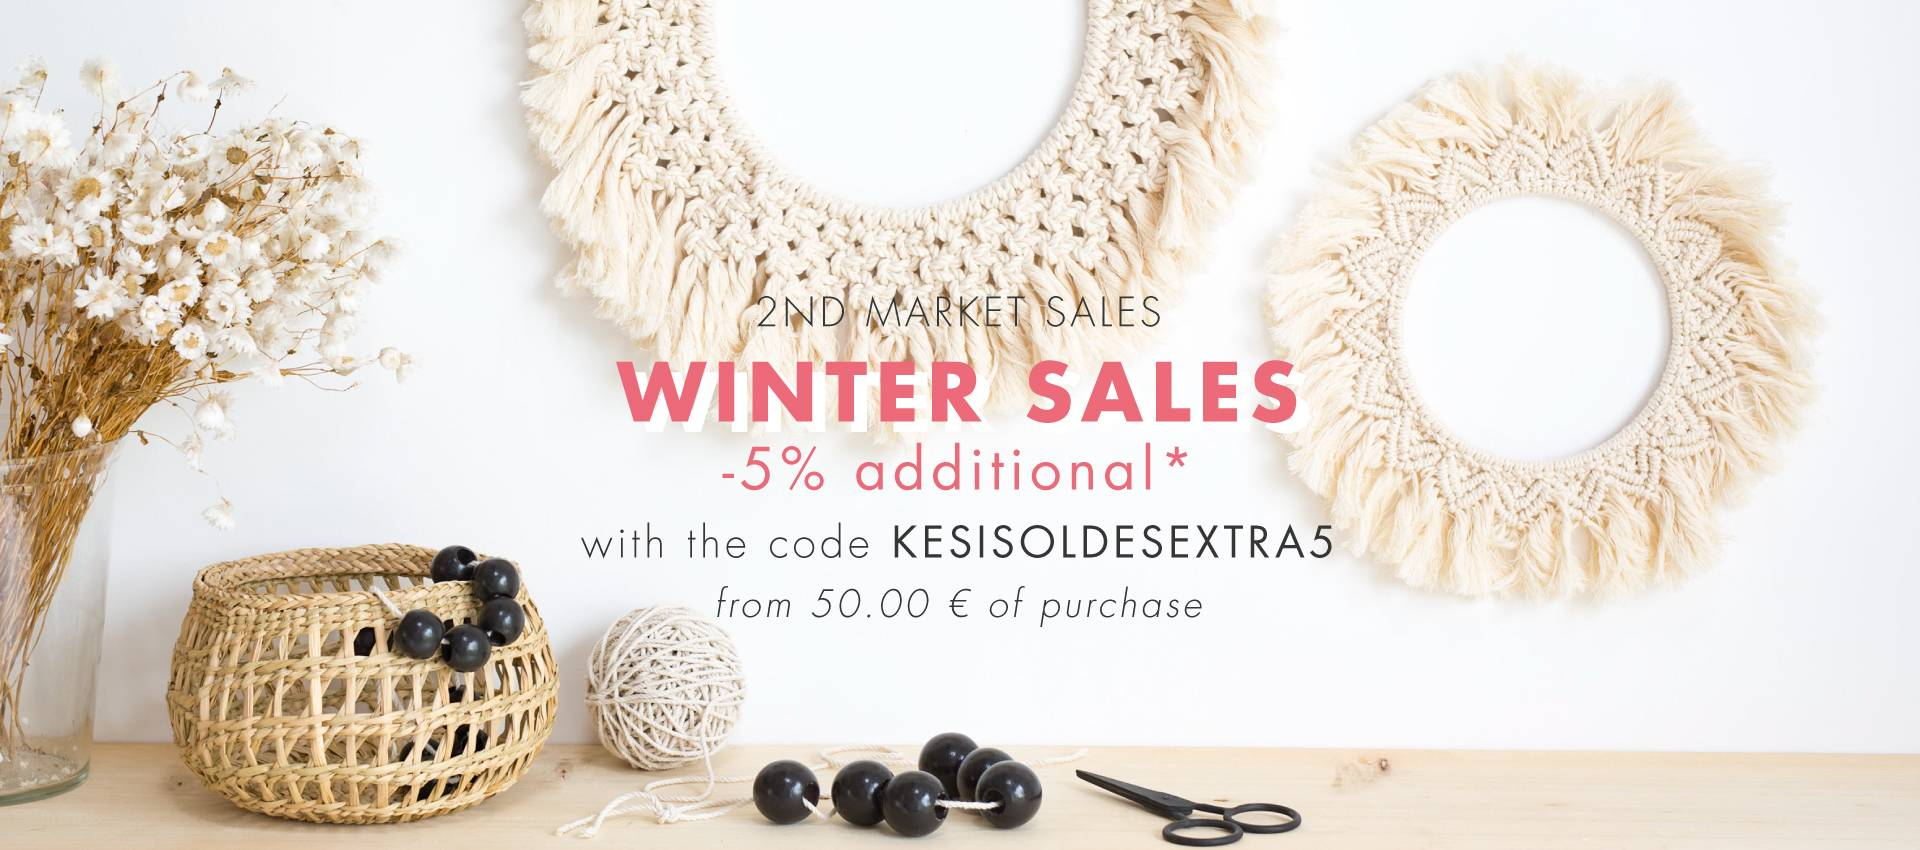 WINTER SALE, IT'S GO! UP TO 75% OFF ON A WIDE SELECTION OF ITEMS!